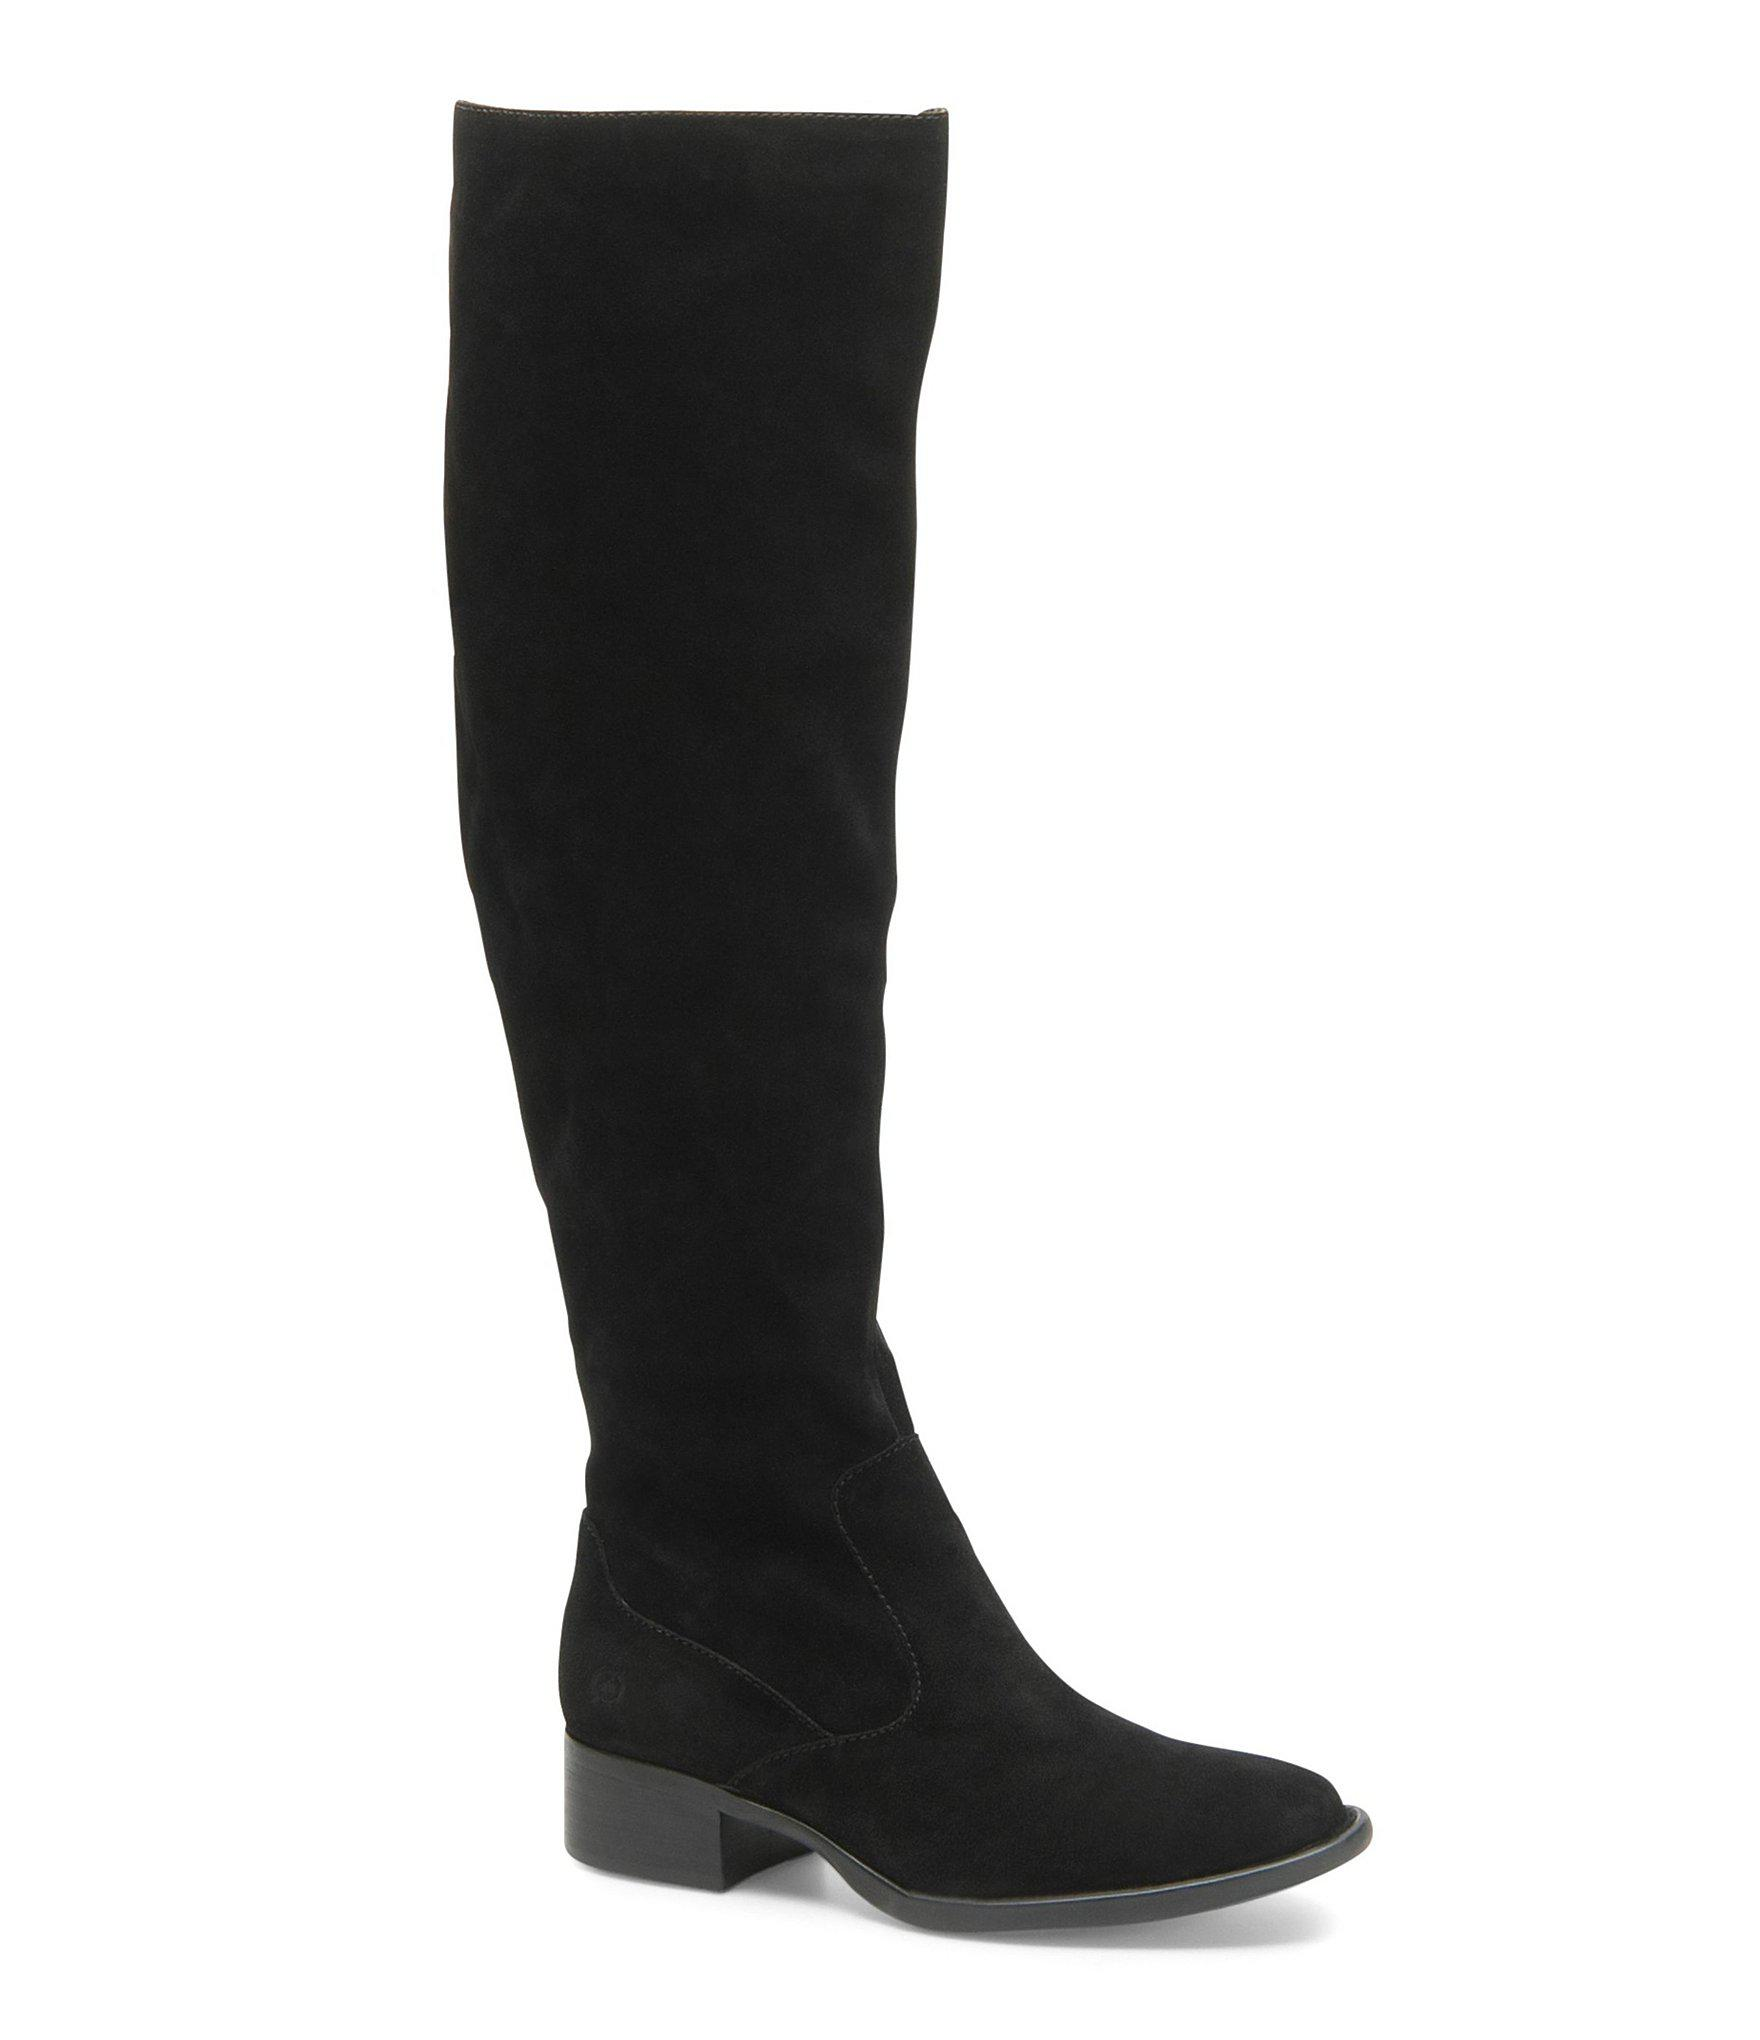 c6a7d83a9a7 Lyst - Born Cricket Tall Suede Block Heel Boots in Black - Save 61%